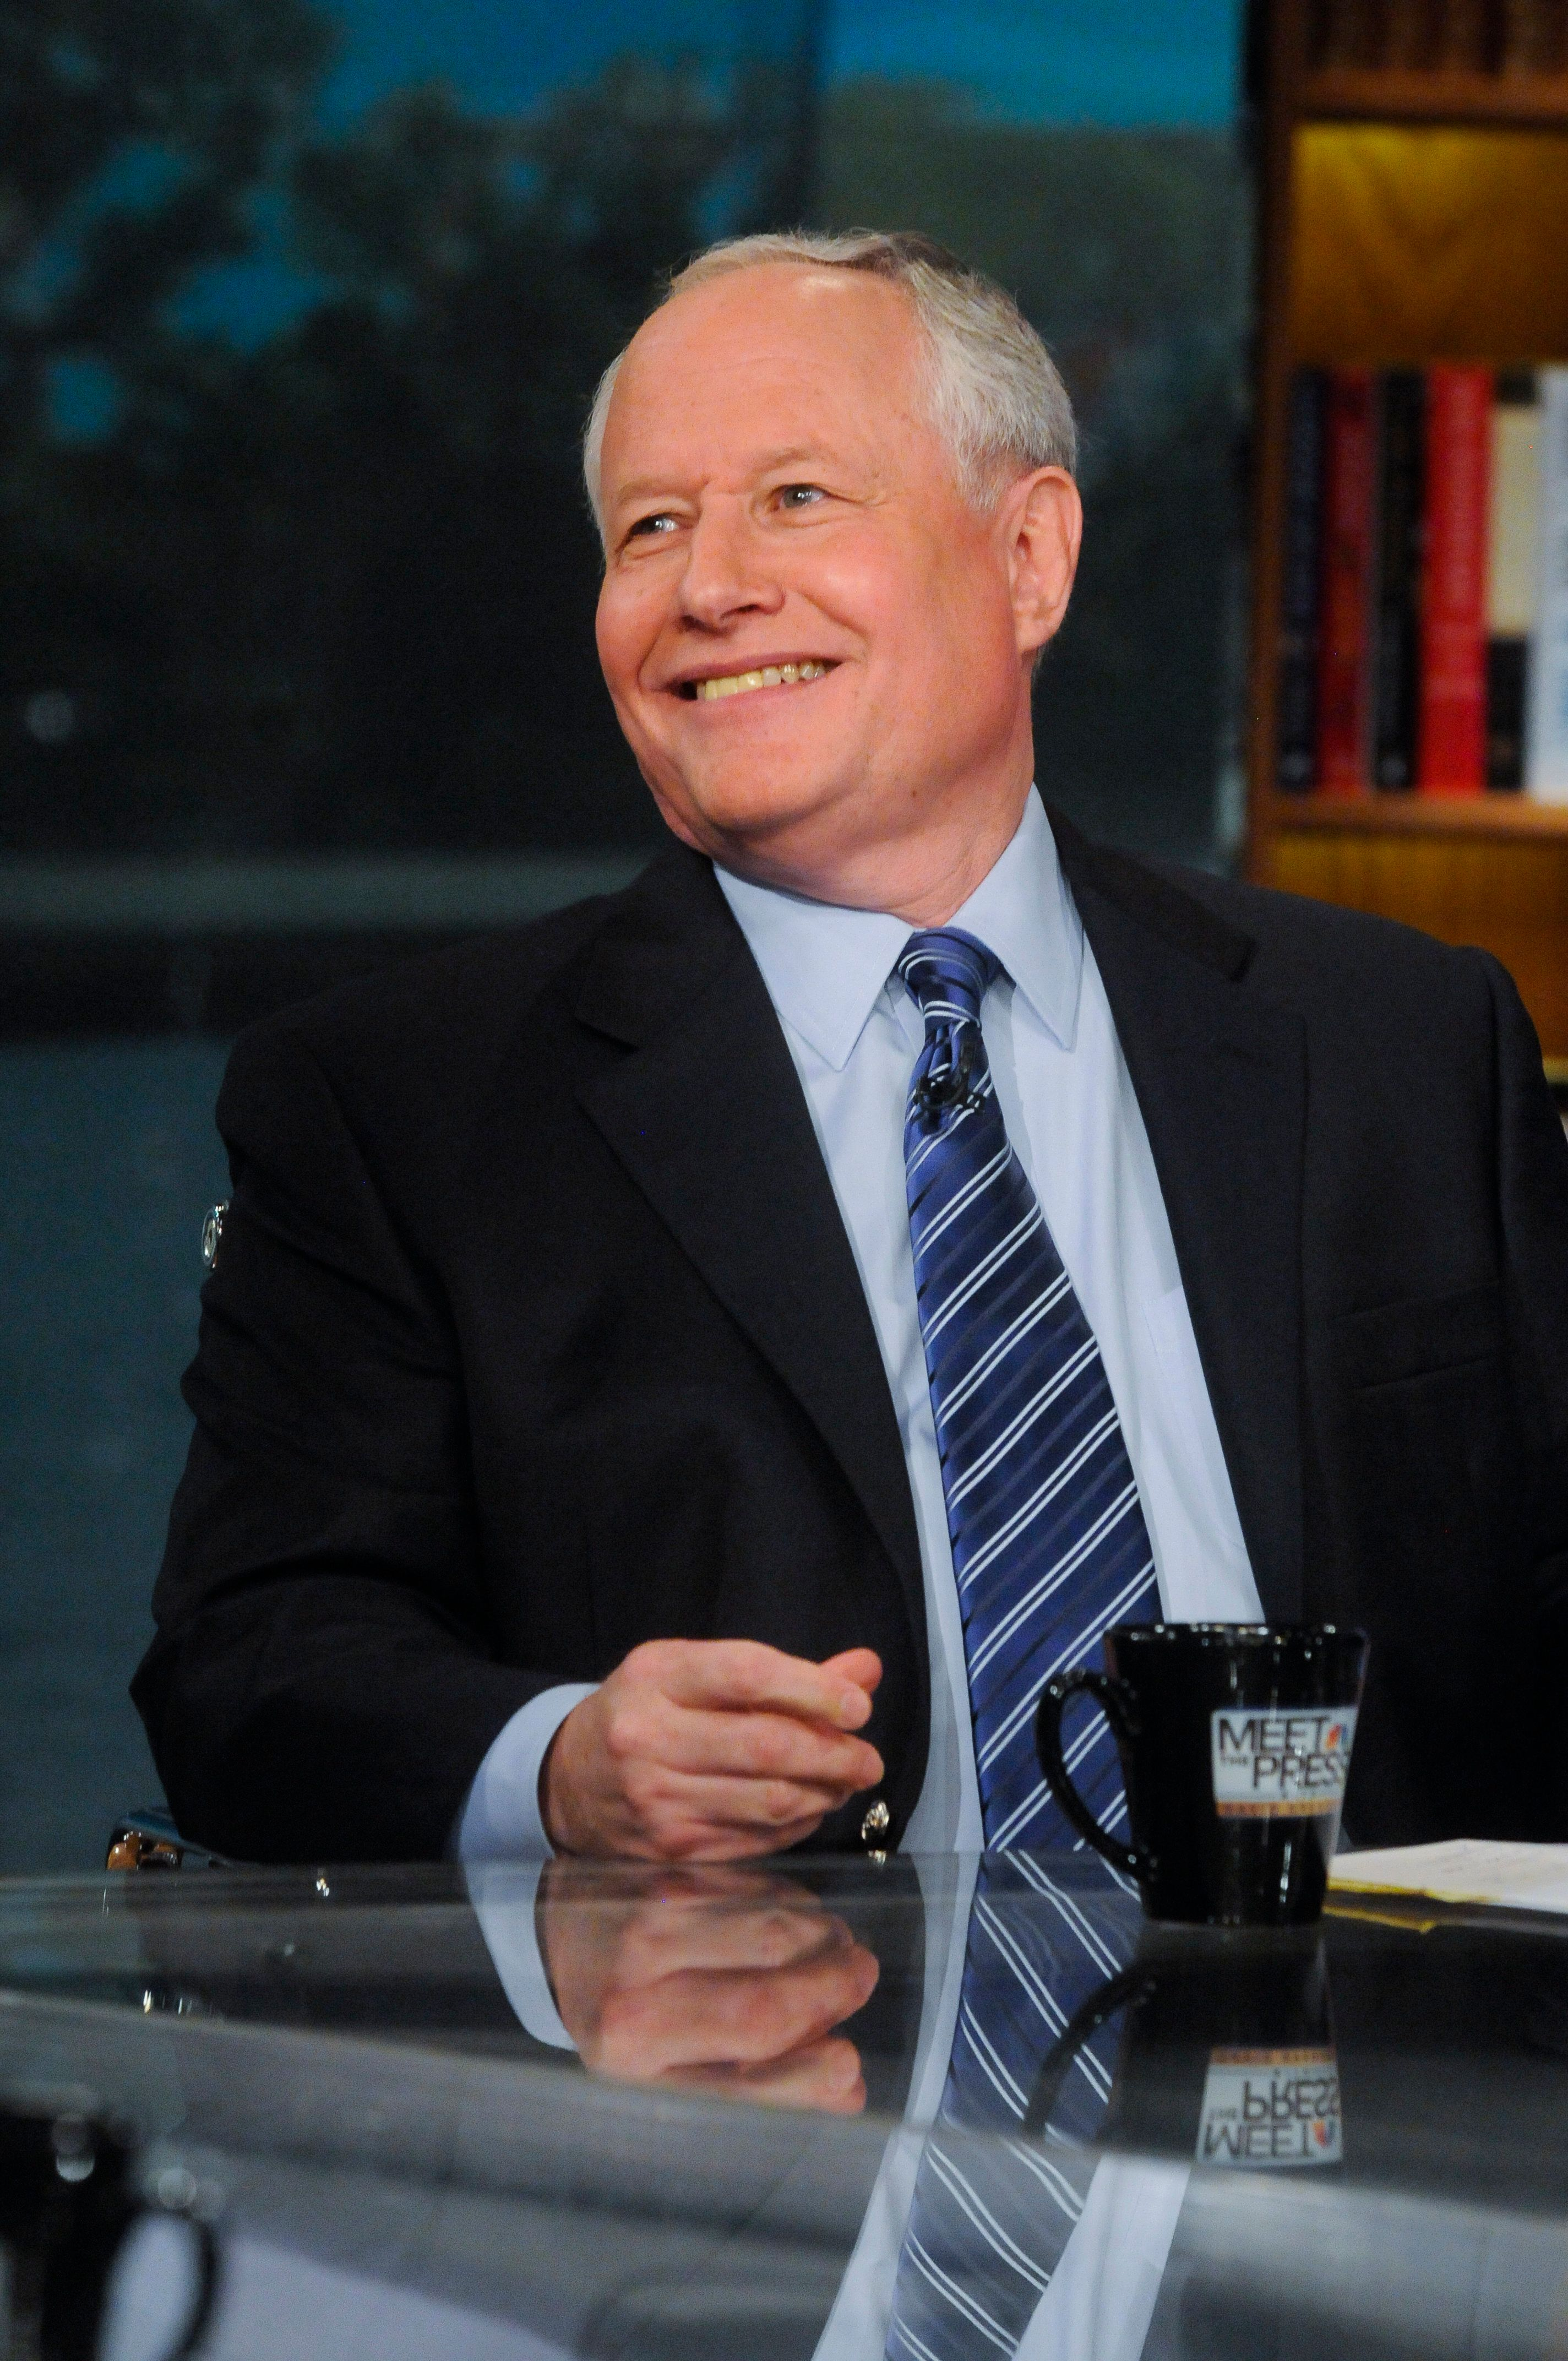 Bill Kristol threw David French's name into the 2016 presidential discussion with little warning, putting French in a to